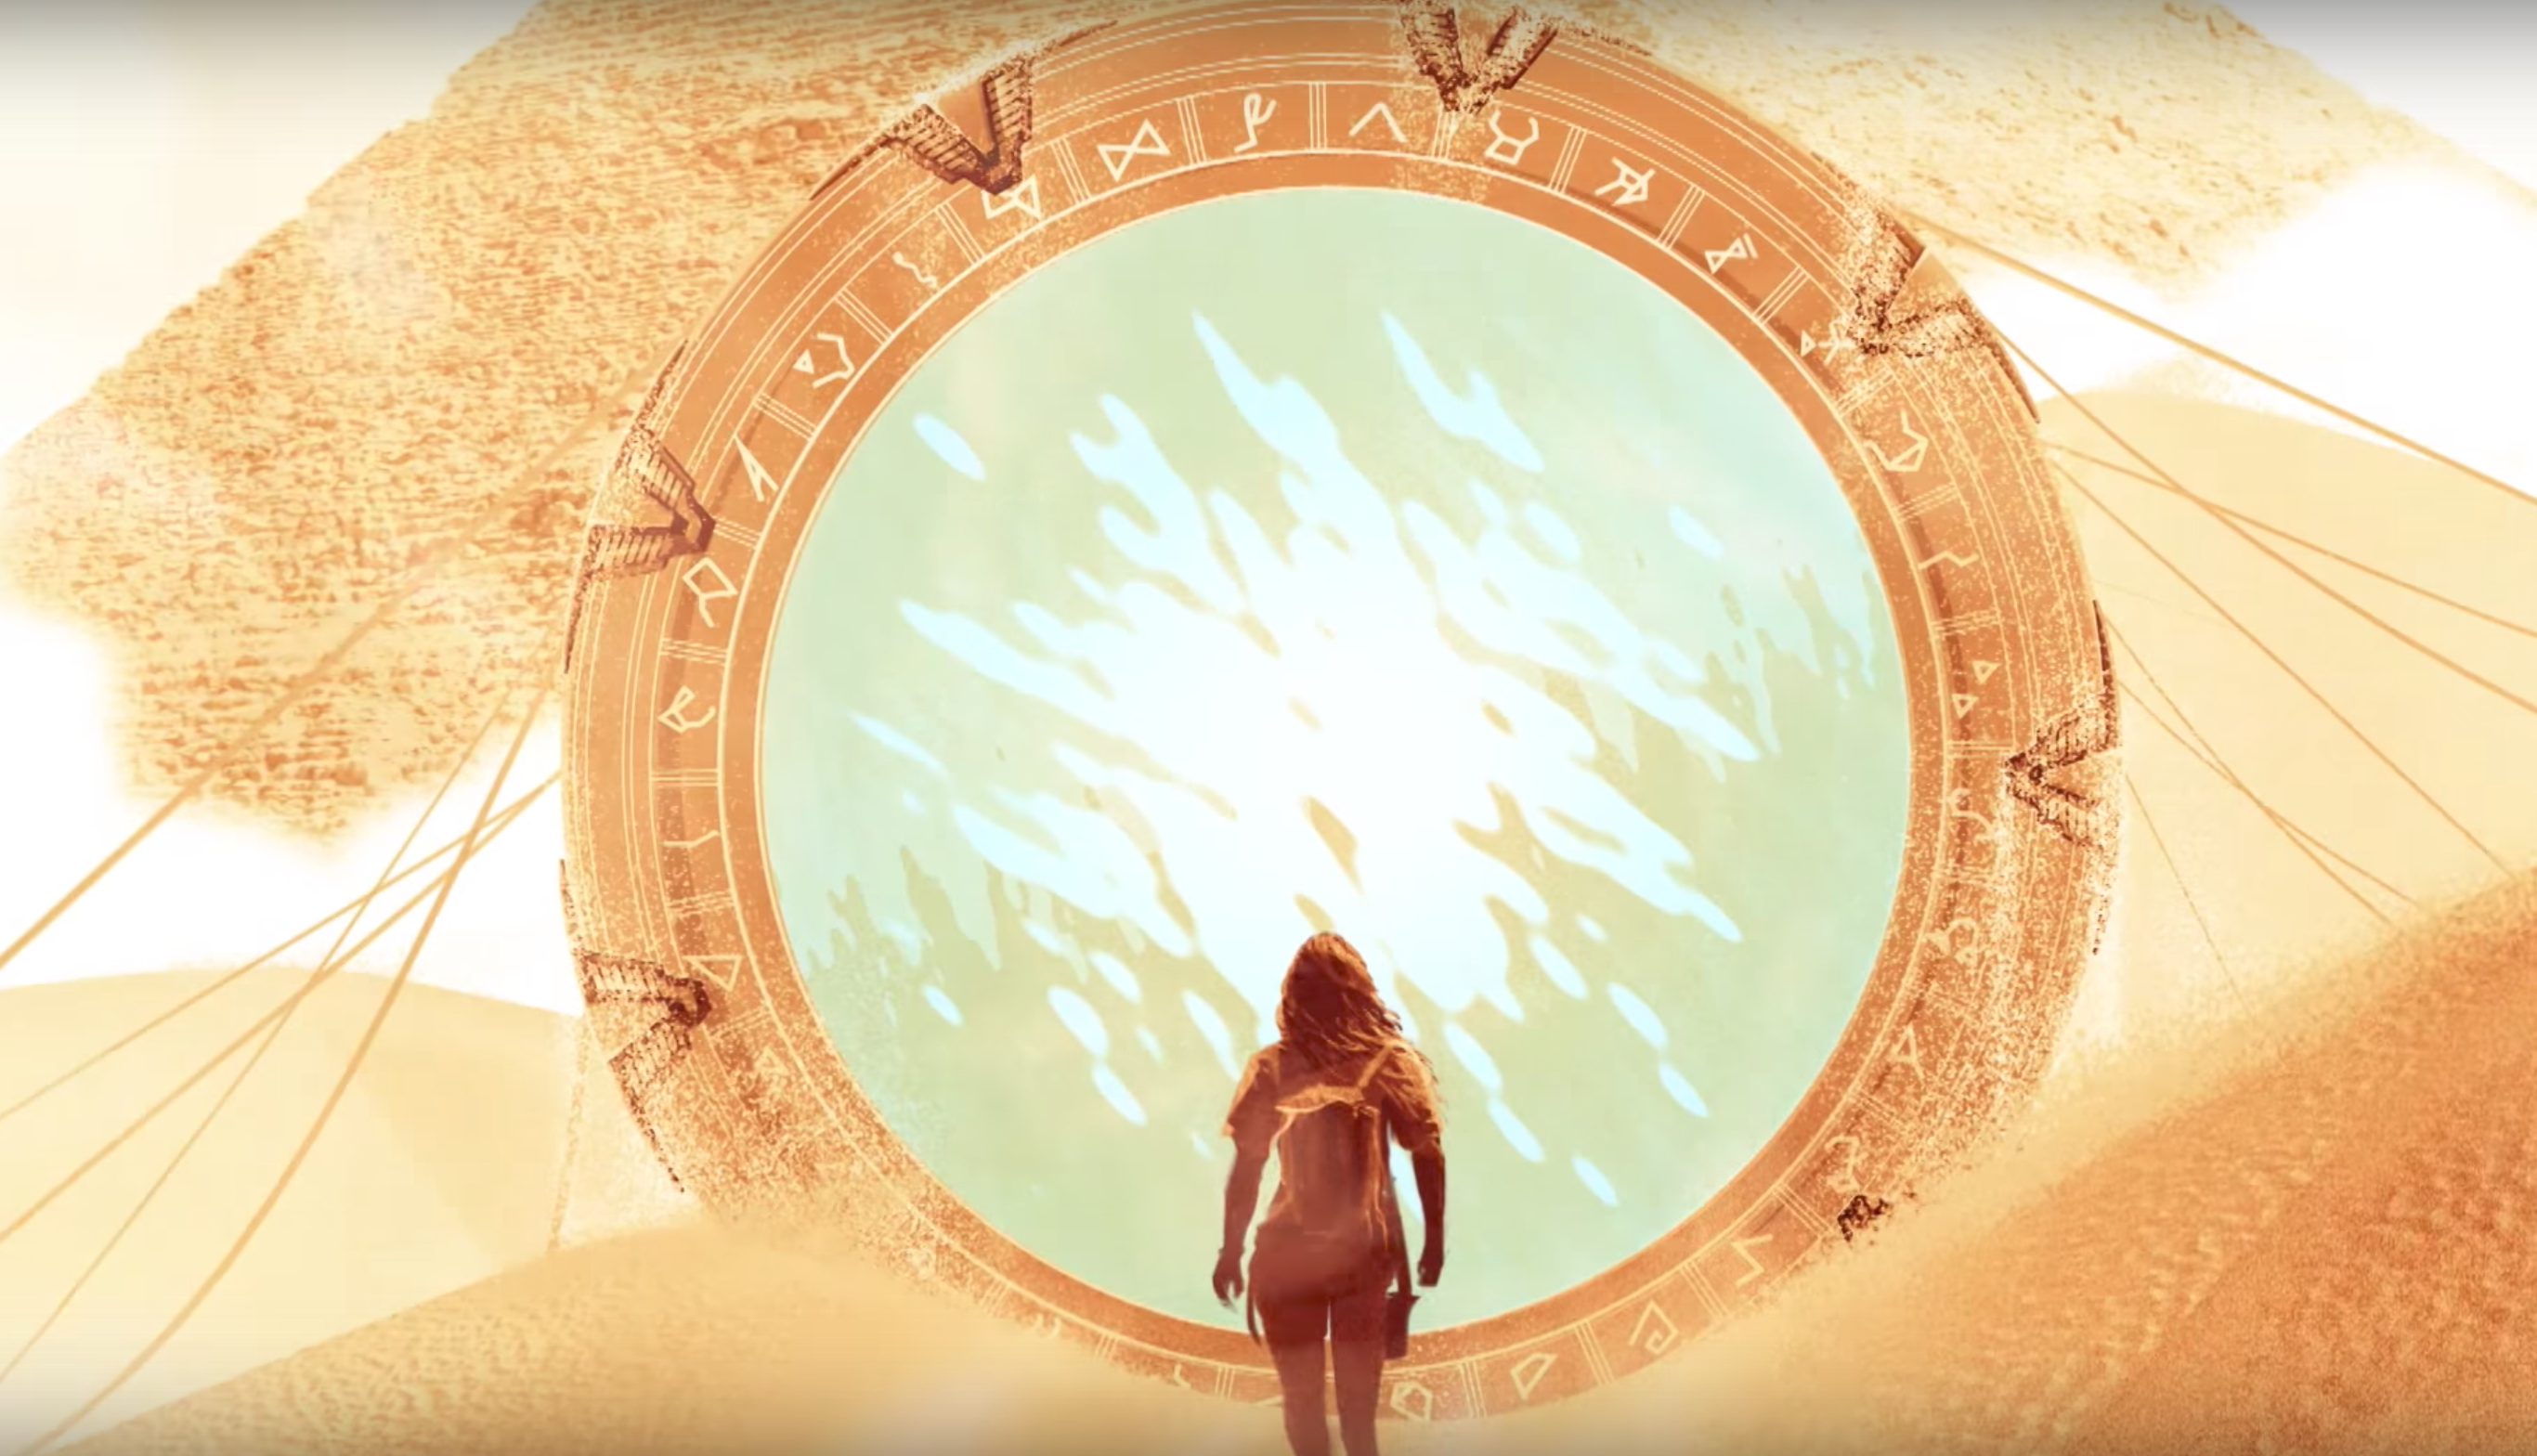 Stargate returns with a new web-only prequel show called Stargate Origins